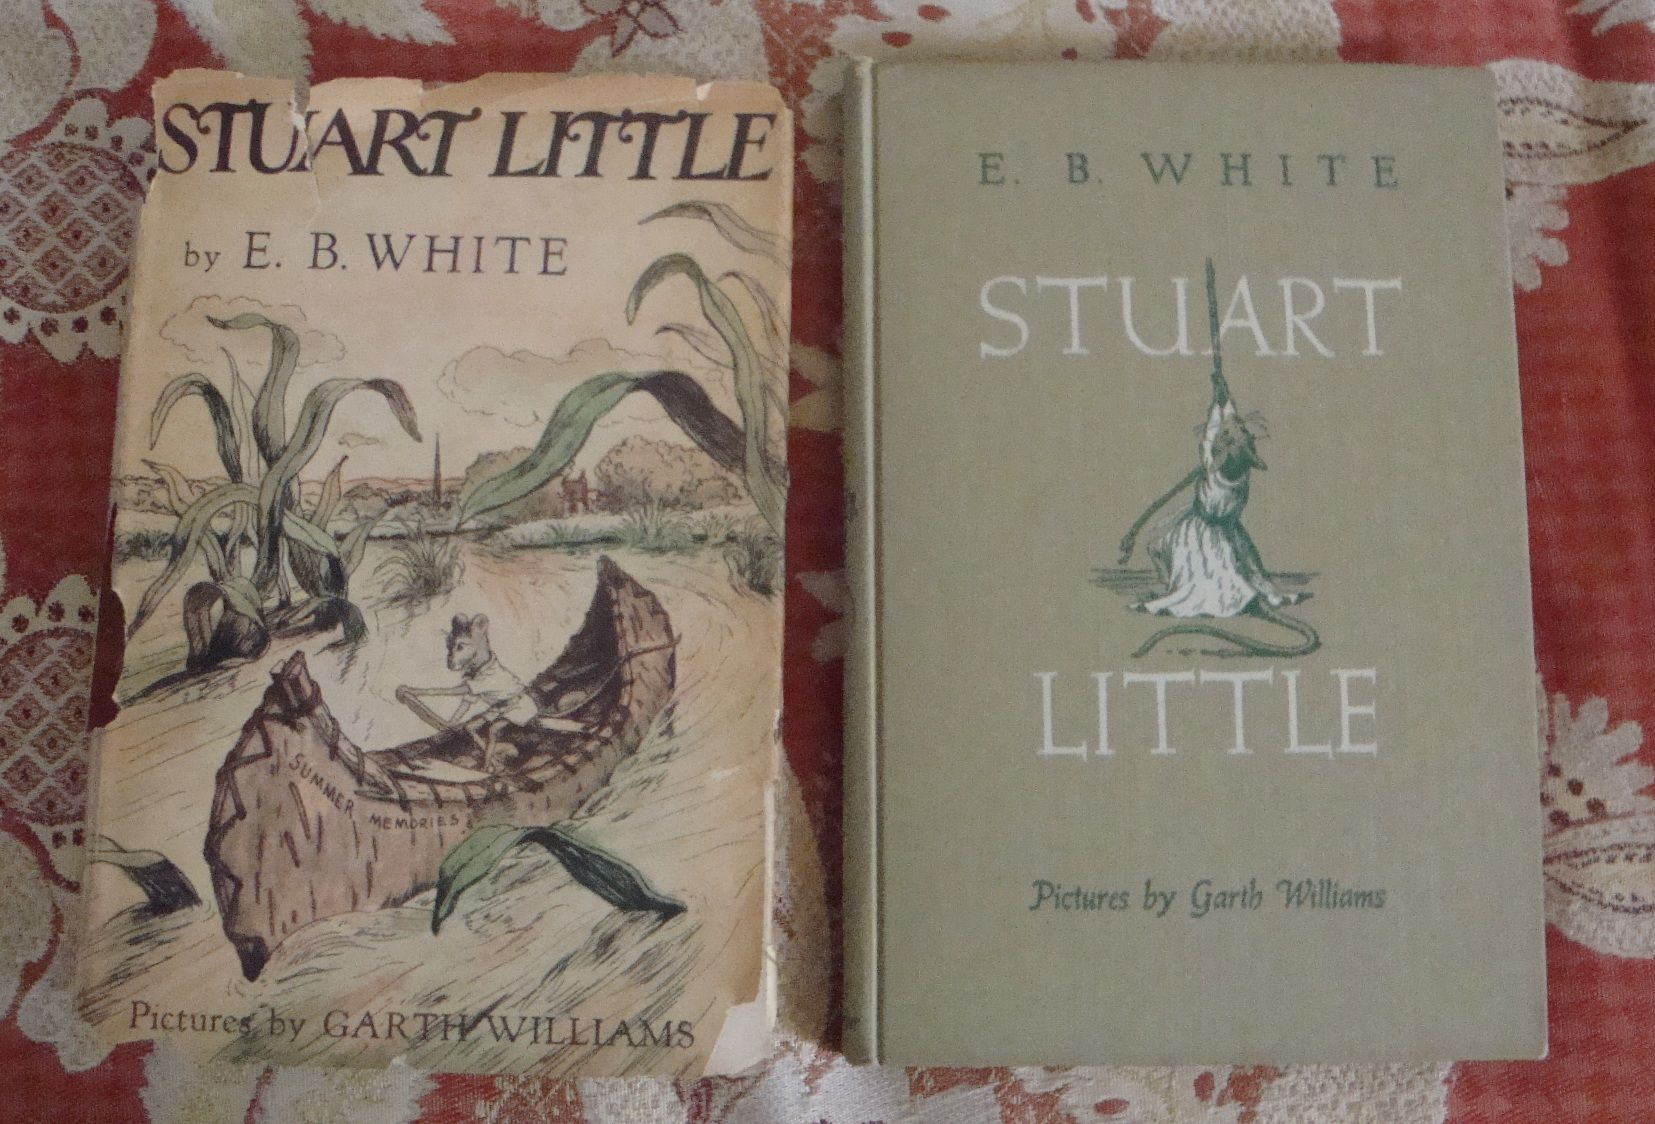 Stuart Little First Printing By E B White